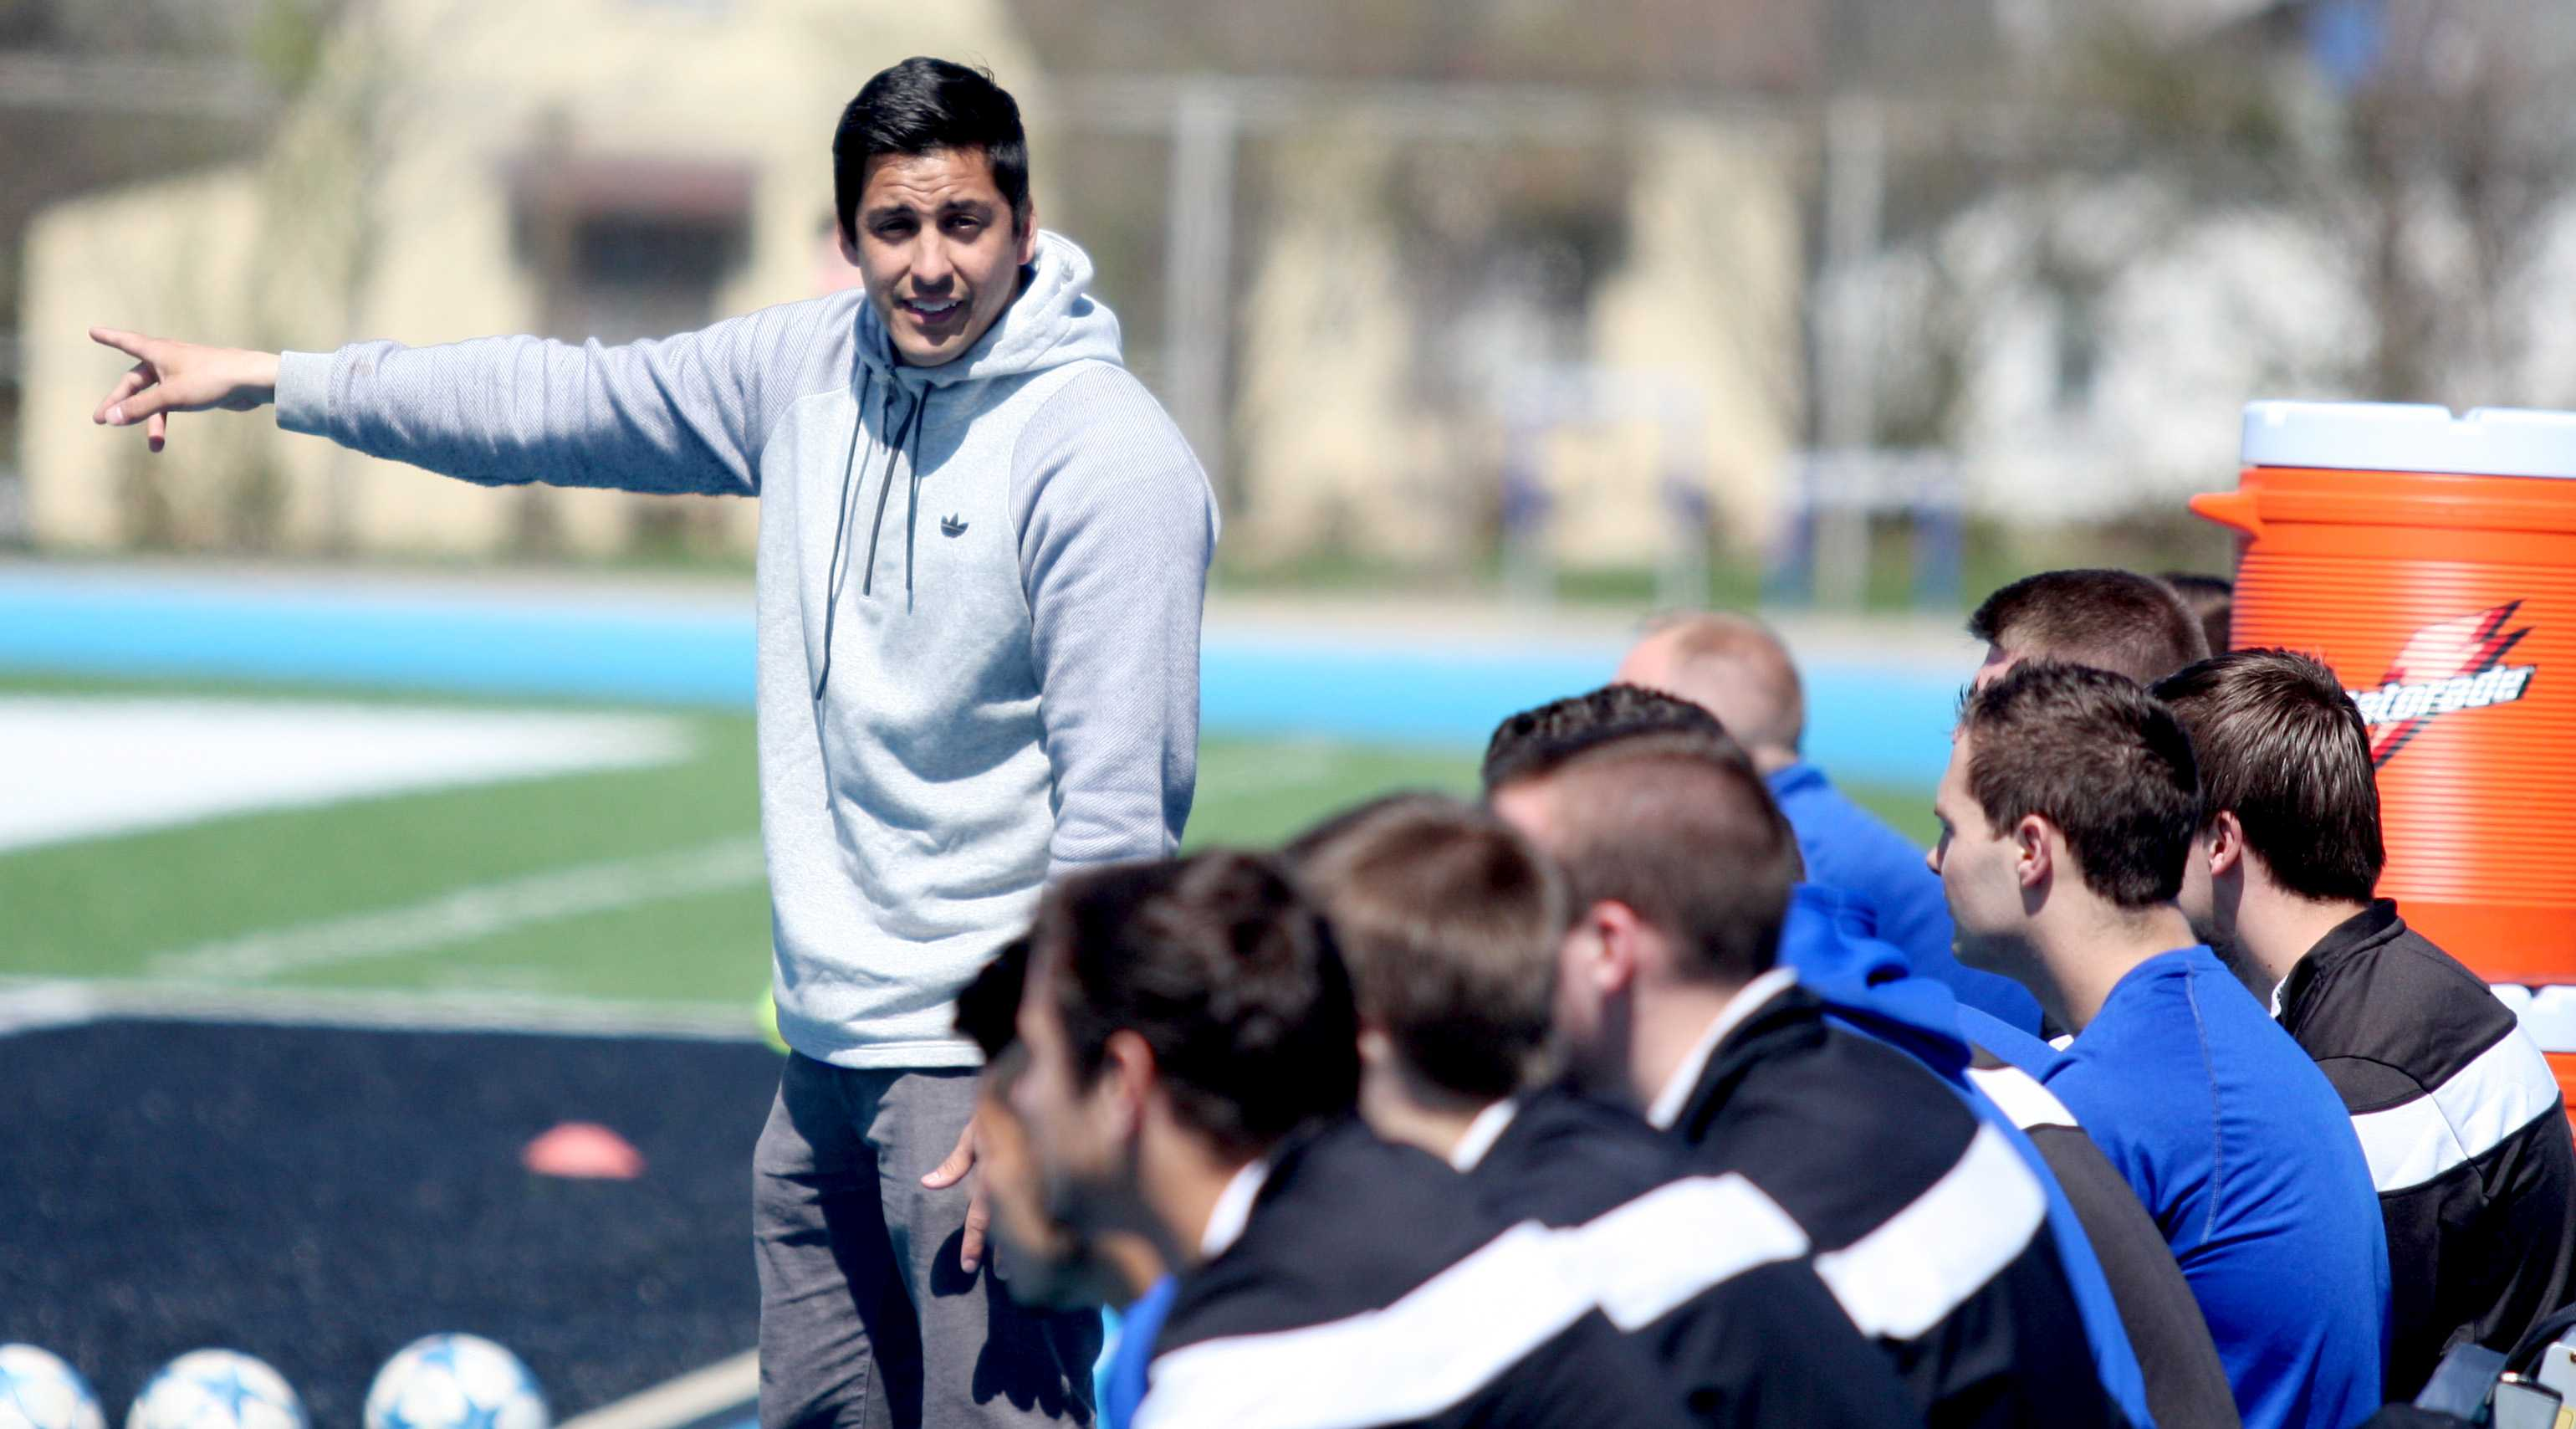 Sean Hastings | The Daily Eastern News| Coach Kiki Lara directs the men's soccer team Saturday during the game against Western at O'Brien Field. Lara is the coach of both the men's and women's team.